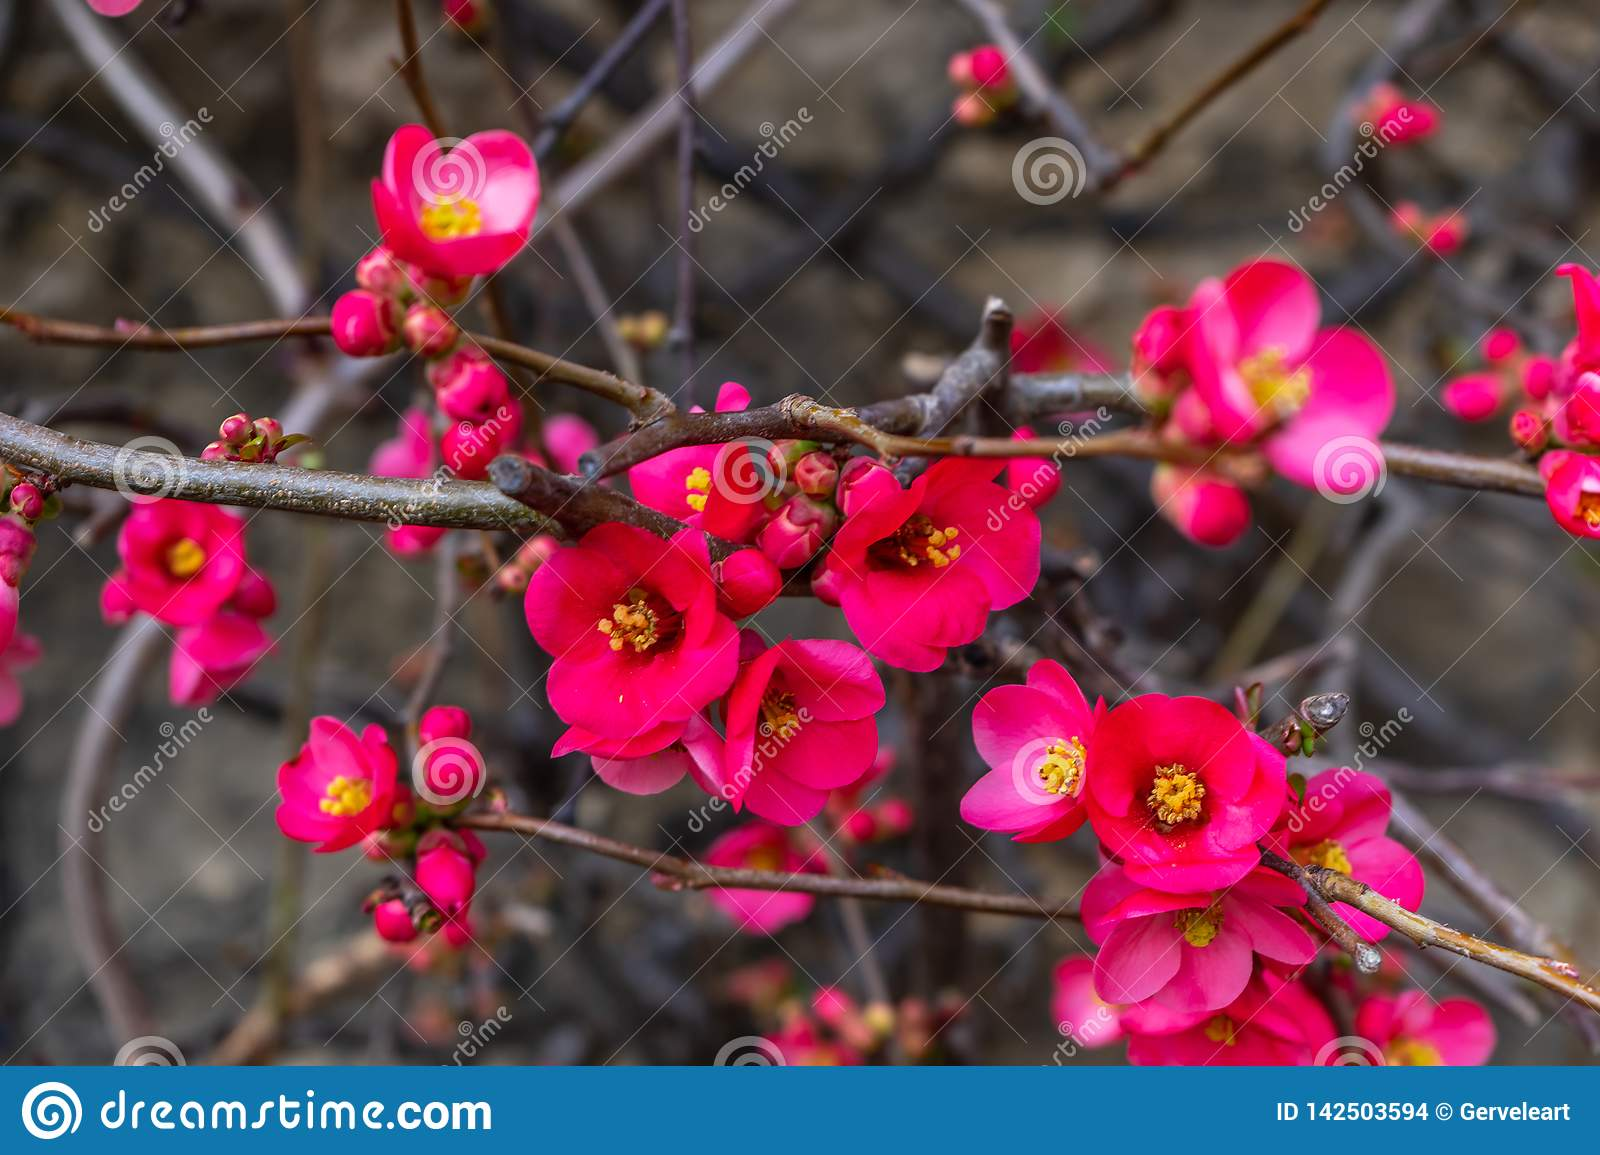 Blooming wild plum. Pink petal. Early spring in England.